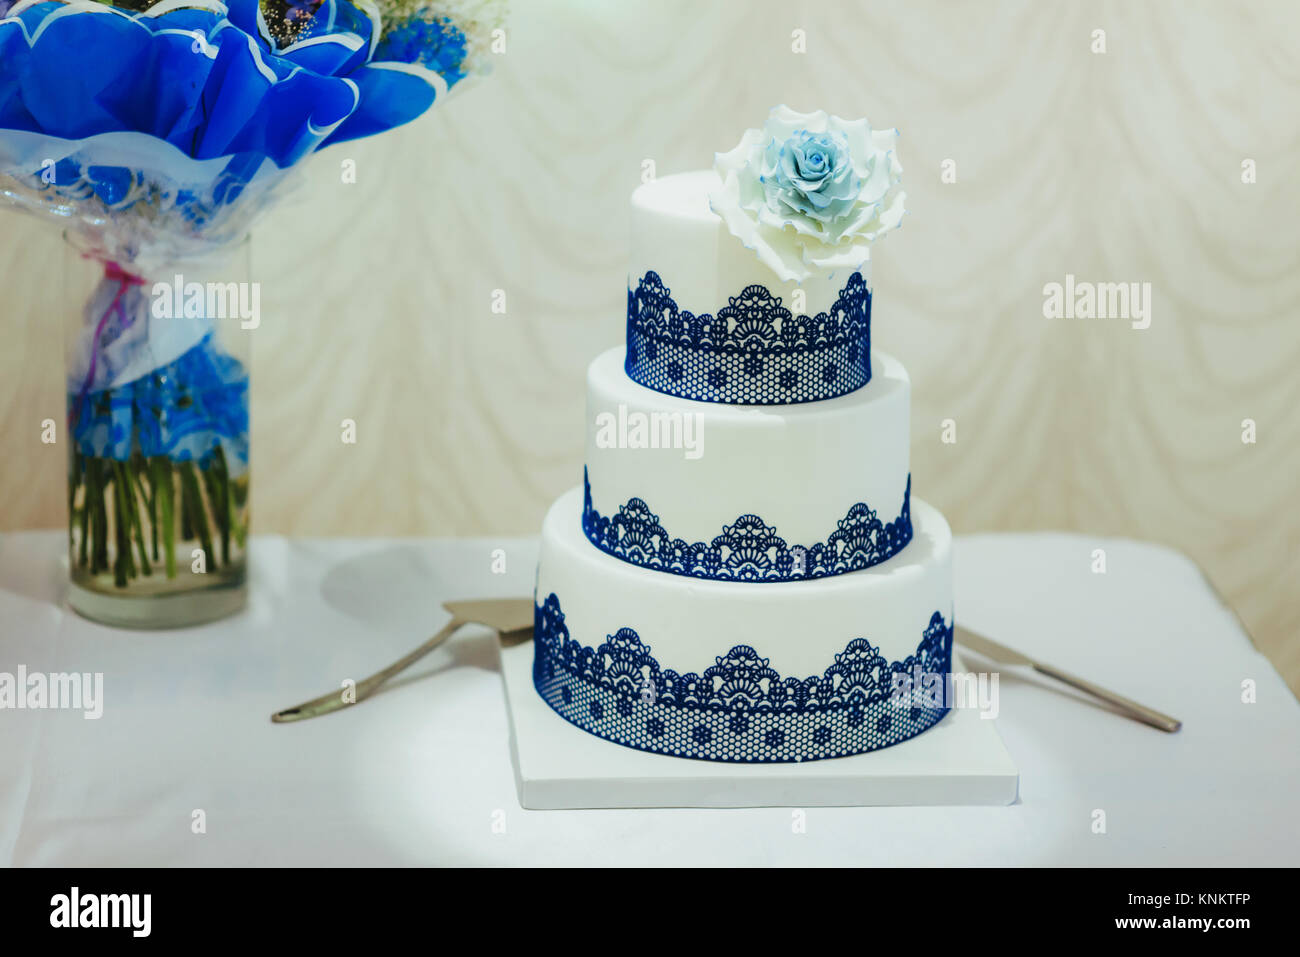 Blue wedding cake decorated with white flowers closeup of blue and blue wedding cake decorated with white flowers closeup of blue and white wedding cake at reception izmirmasajfo